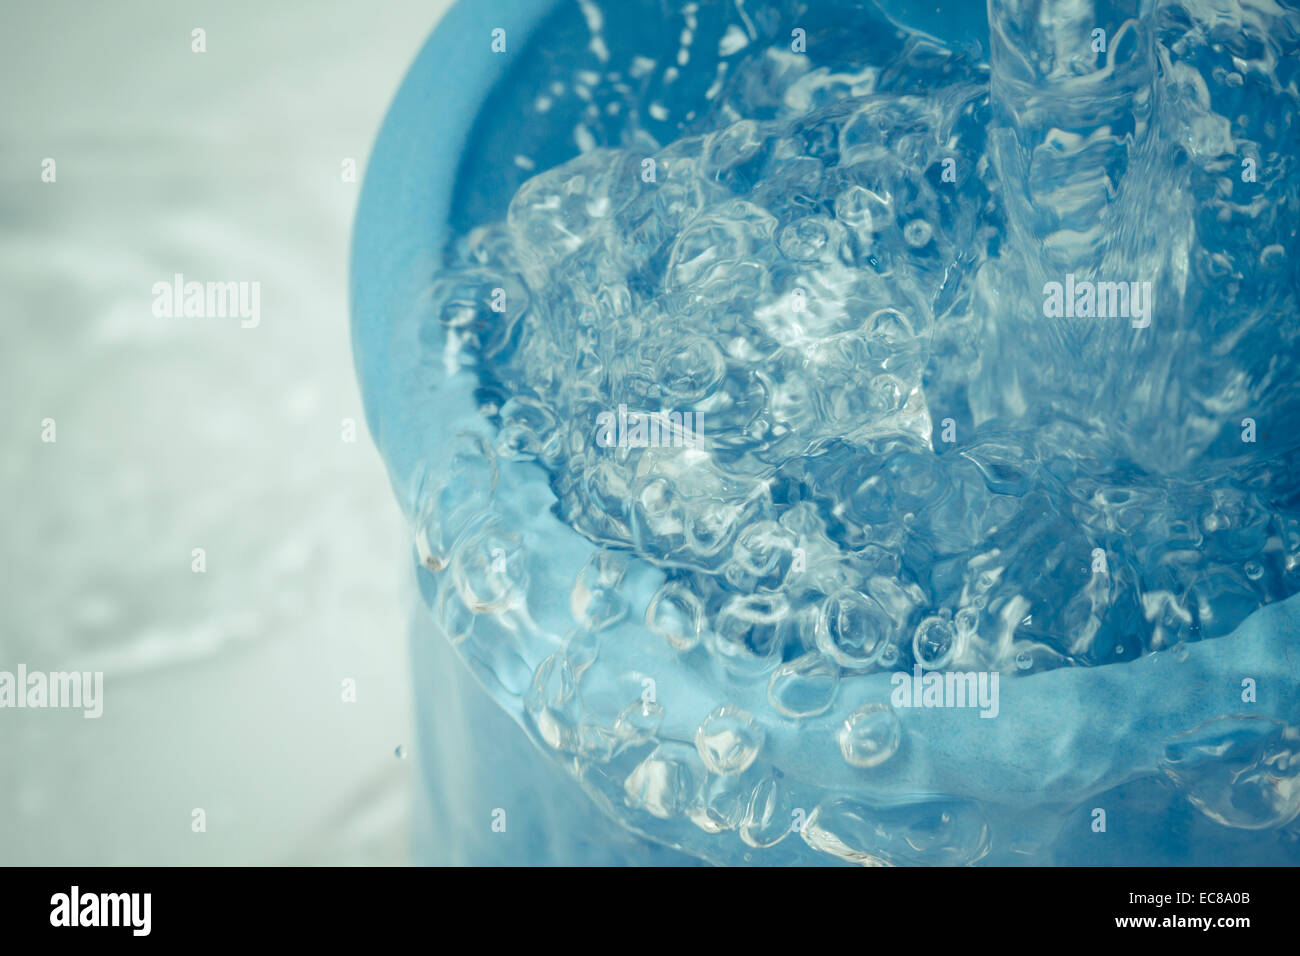 cup container pot coffe grounds; water splashing movement; - Stock Image